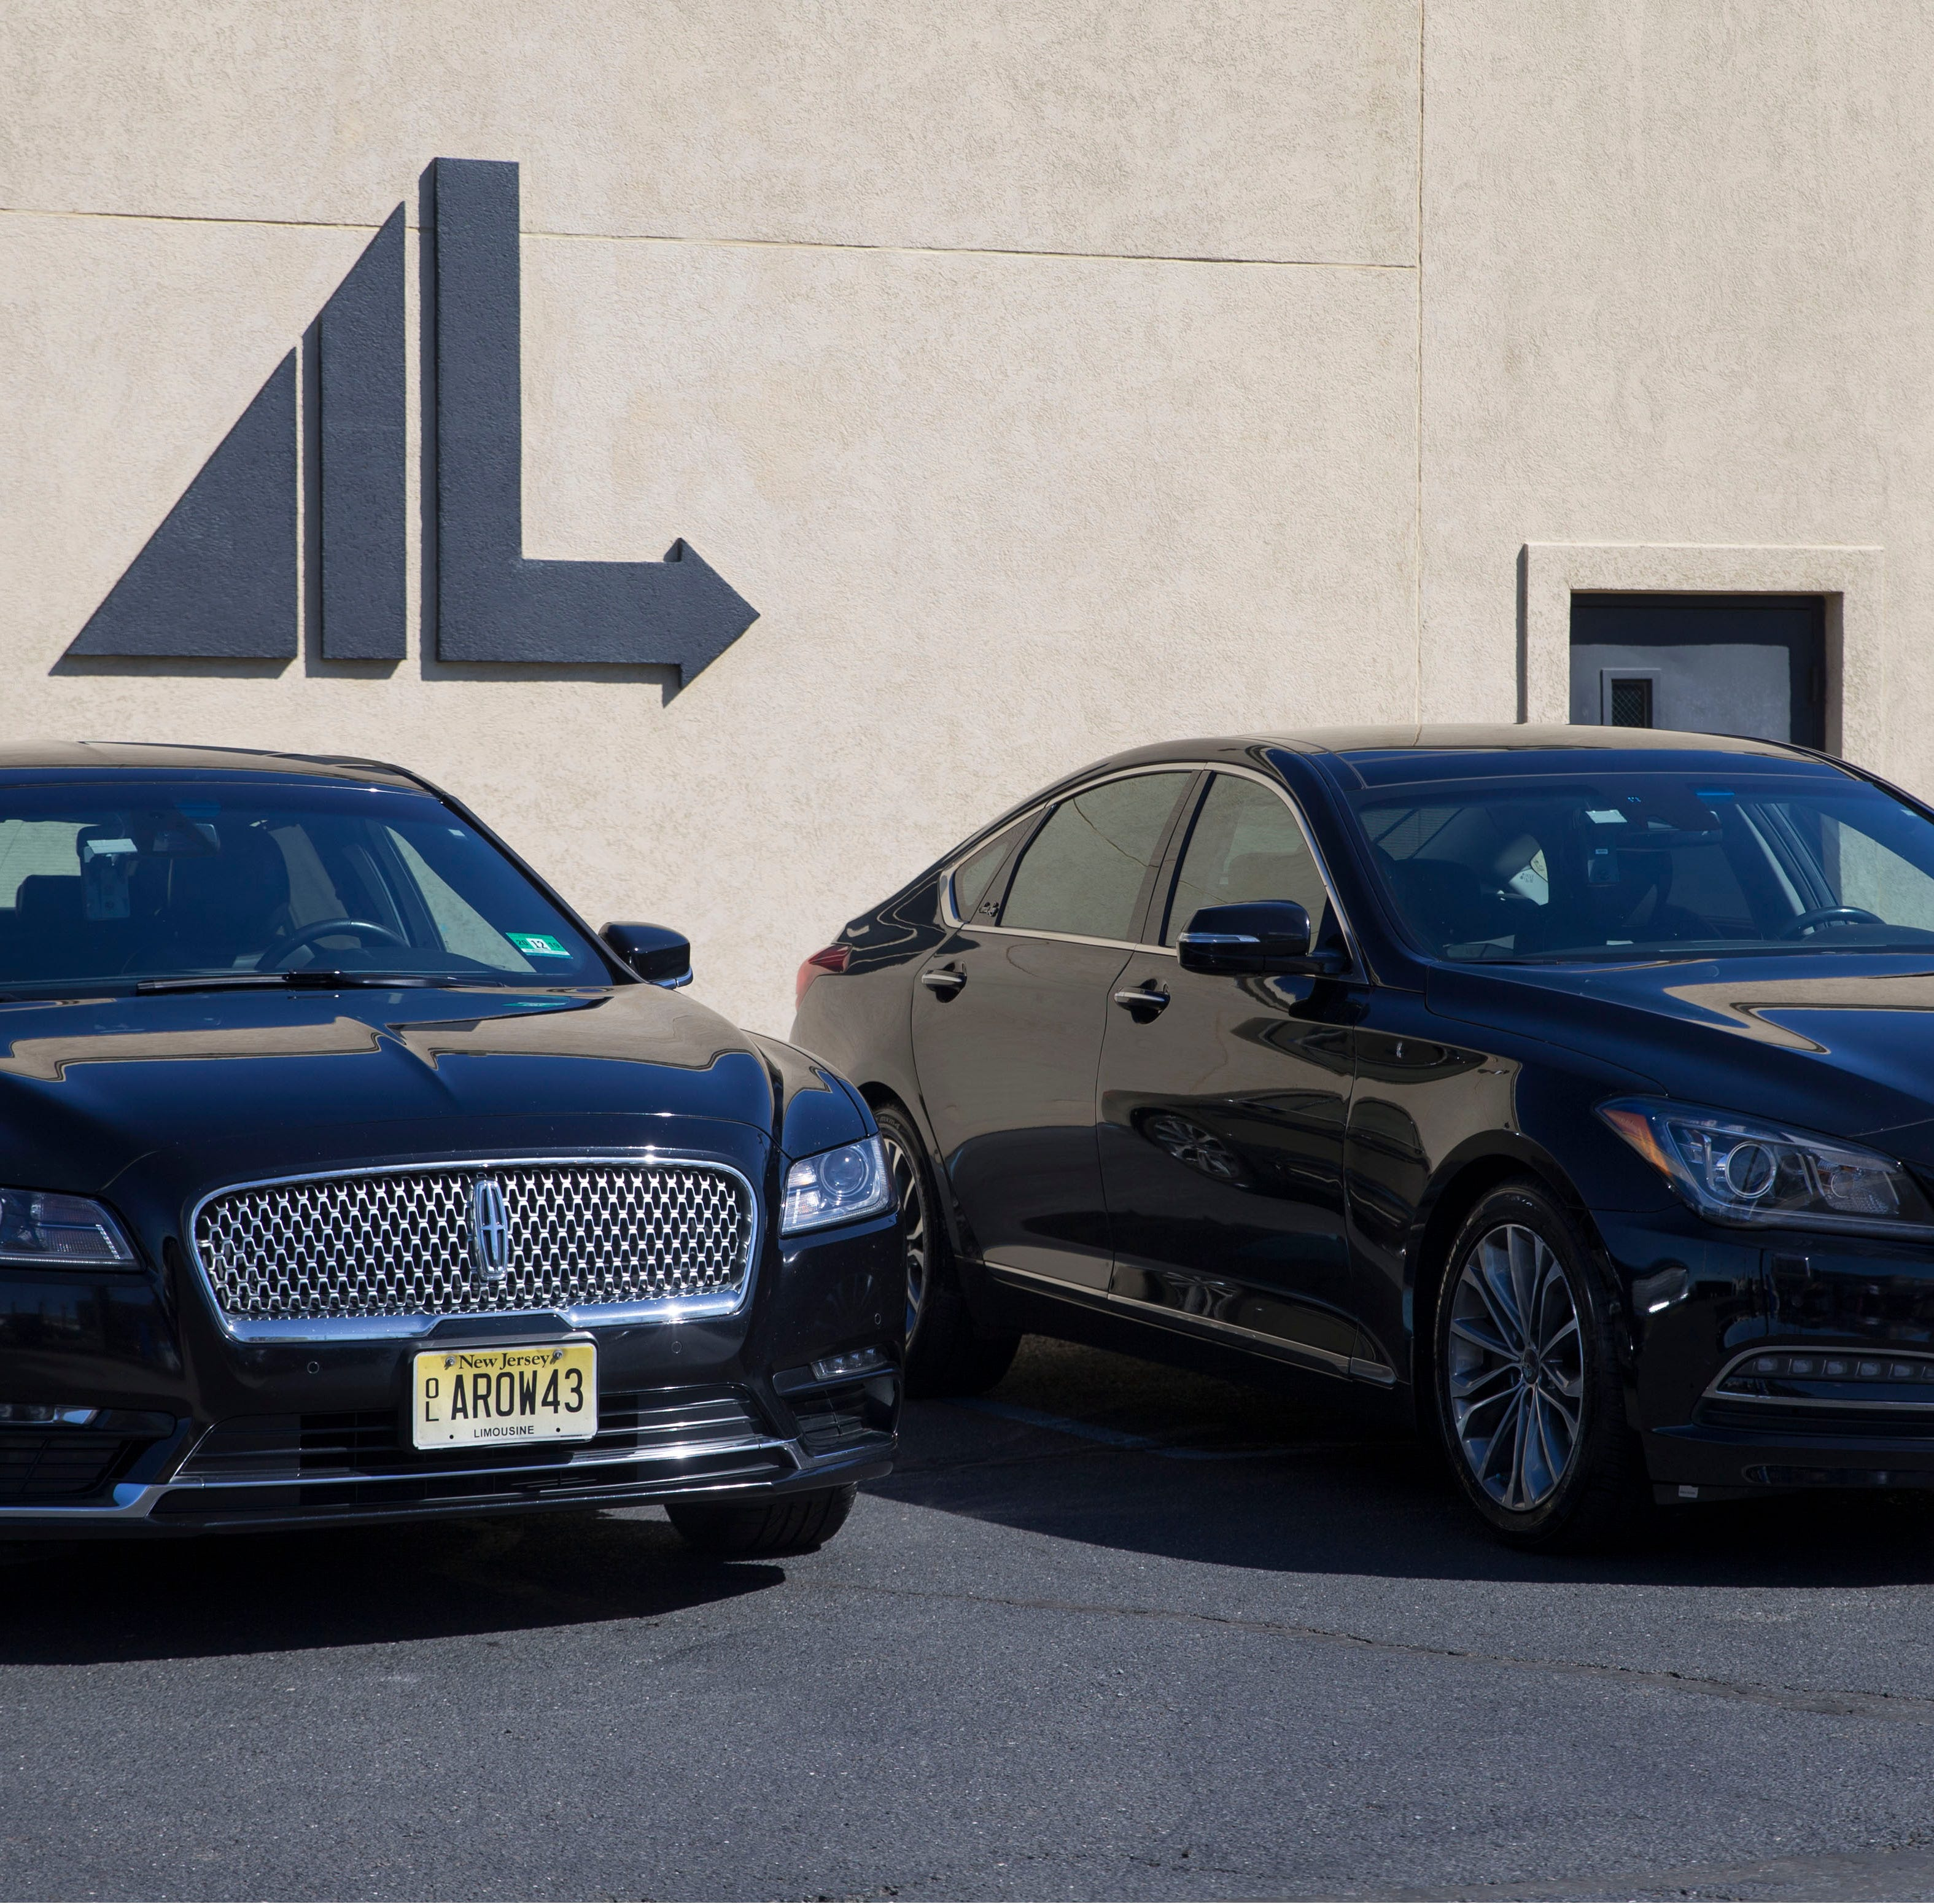 Arrow Limousine rolls on with addition of on-demand service